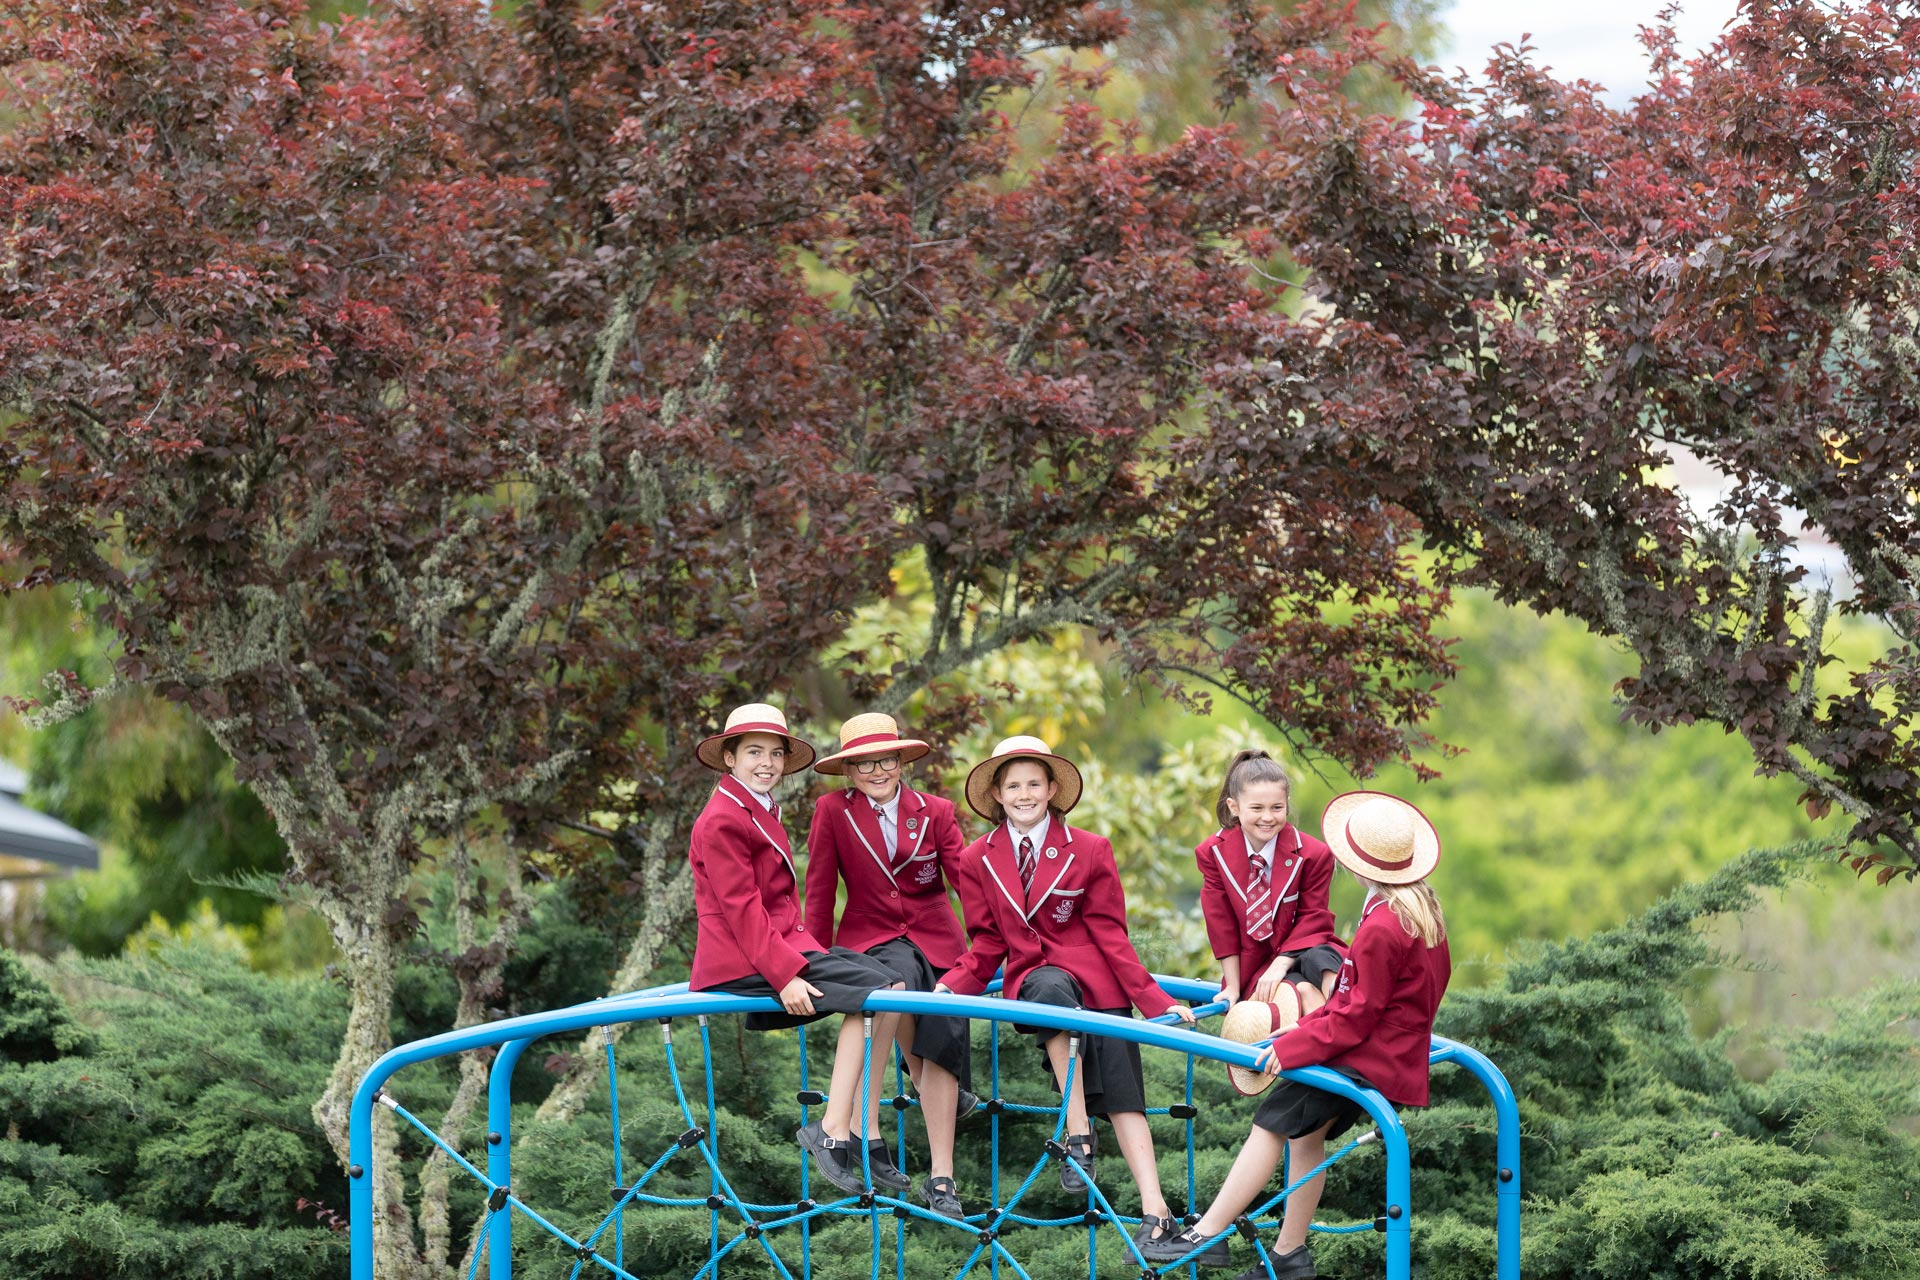 5 Woodford students on a playground